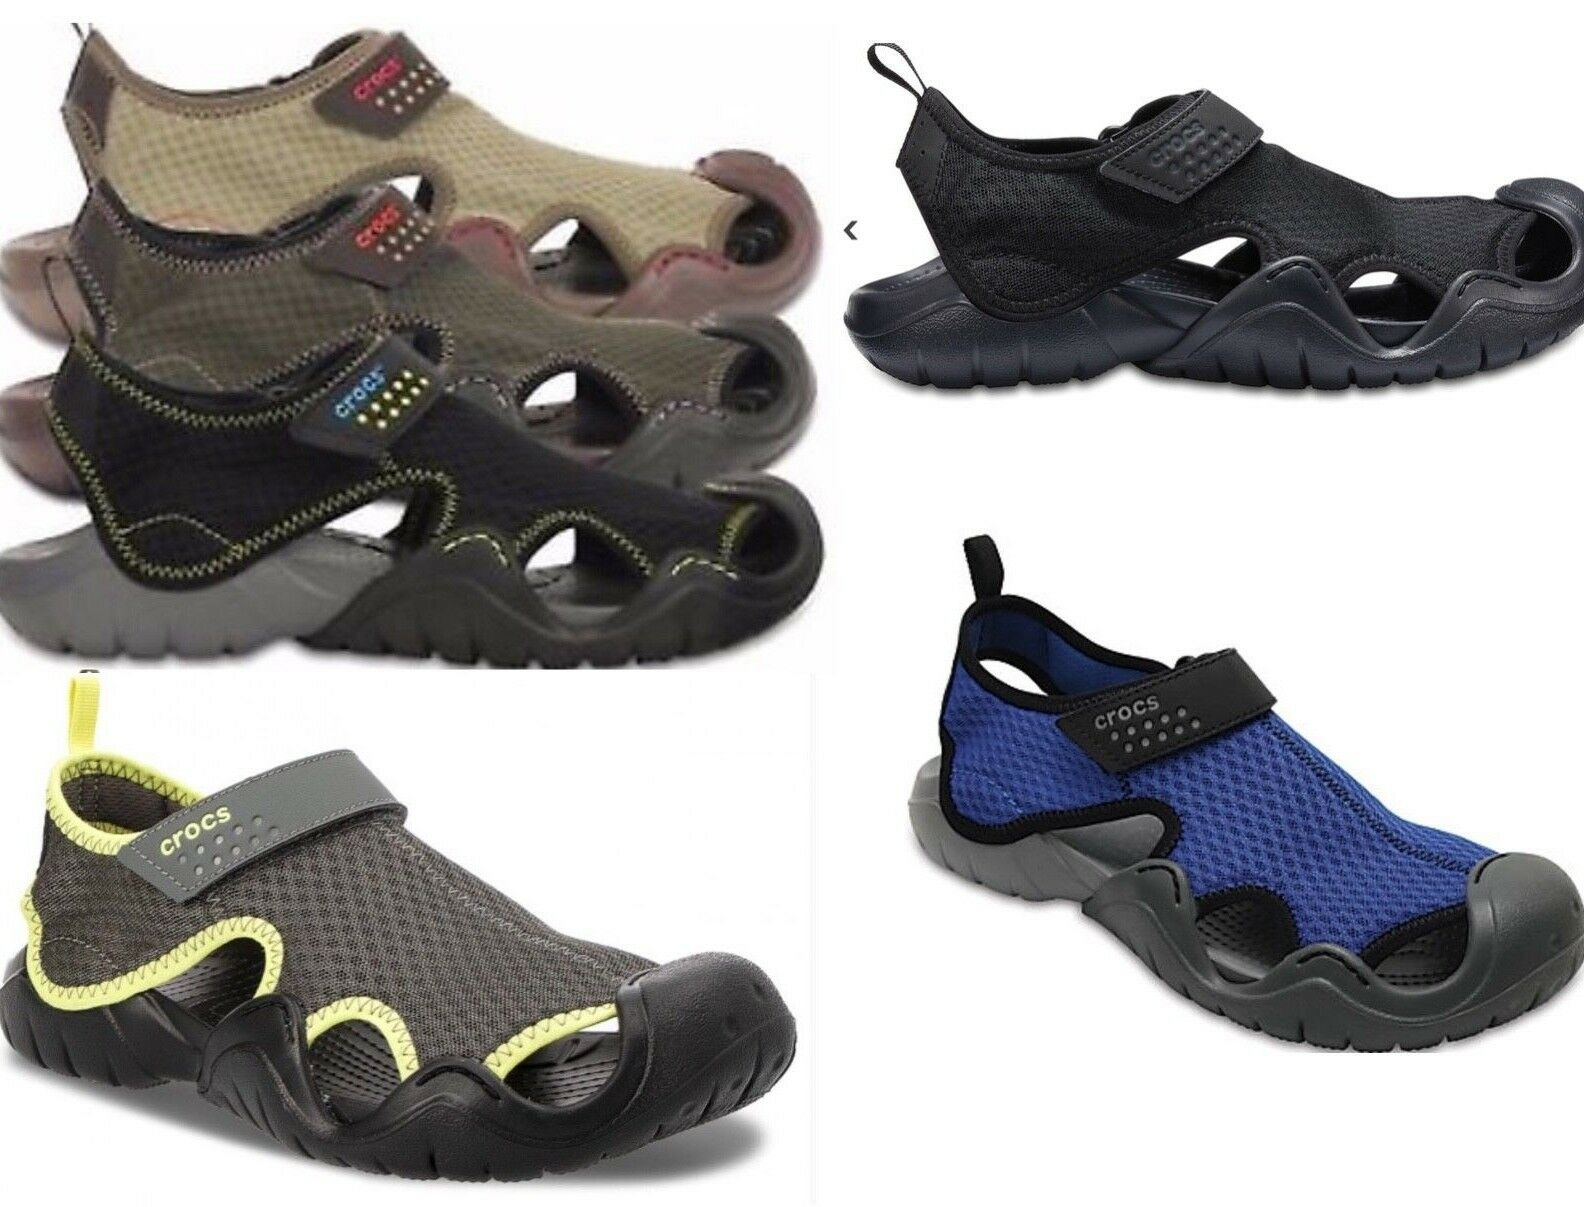 Men's CROCS SWIFTWATER  Sandals  BLACK, ESPRESSO BROWN,  GRE